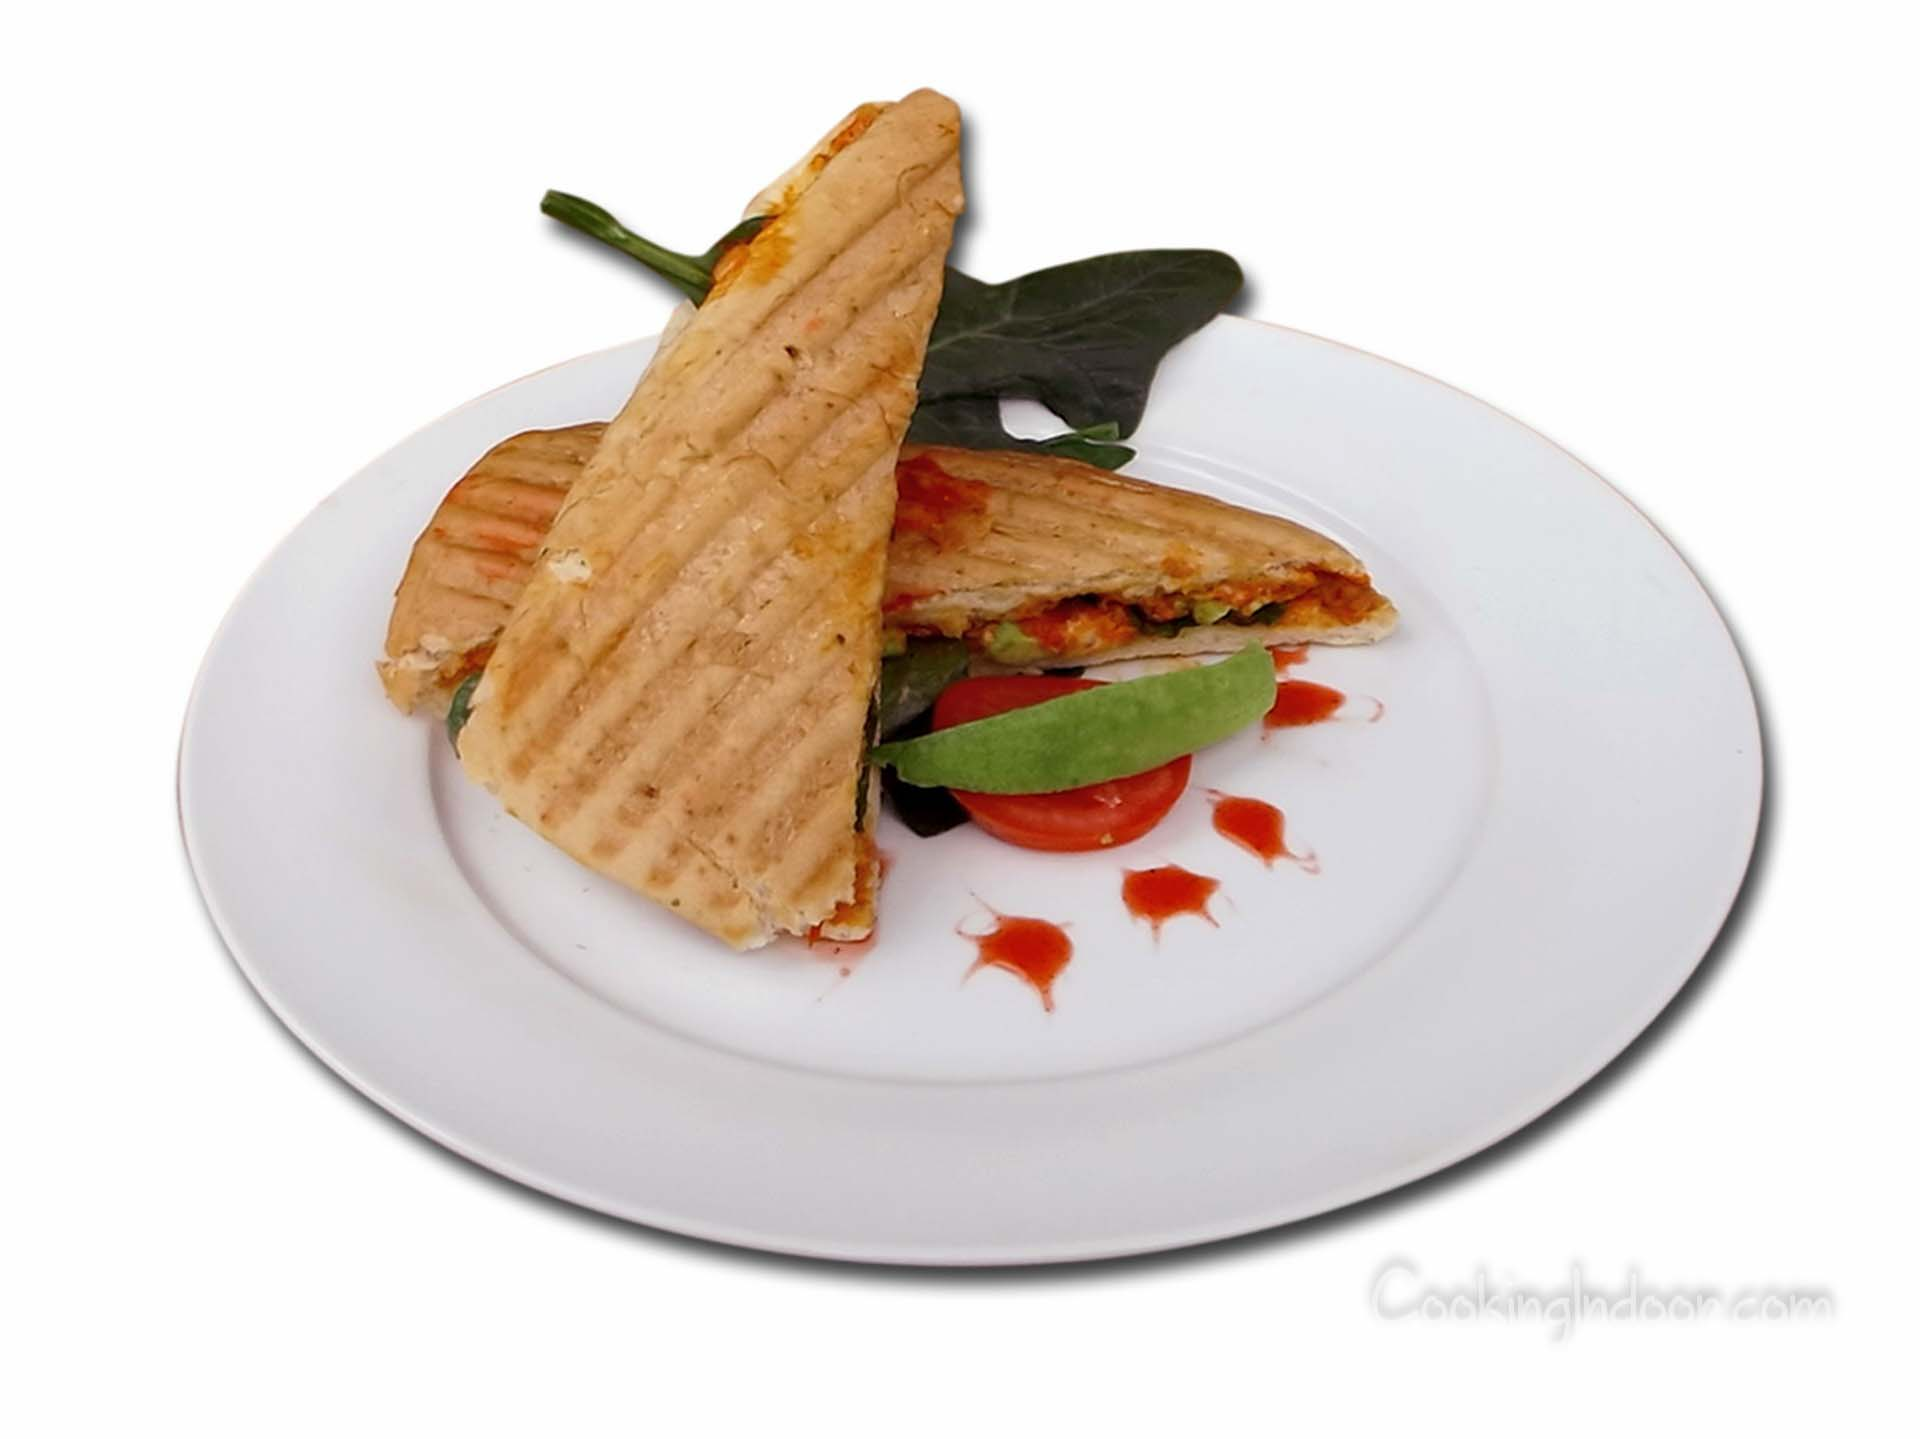 How to use a panini grill